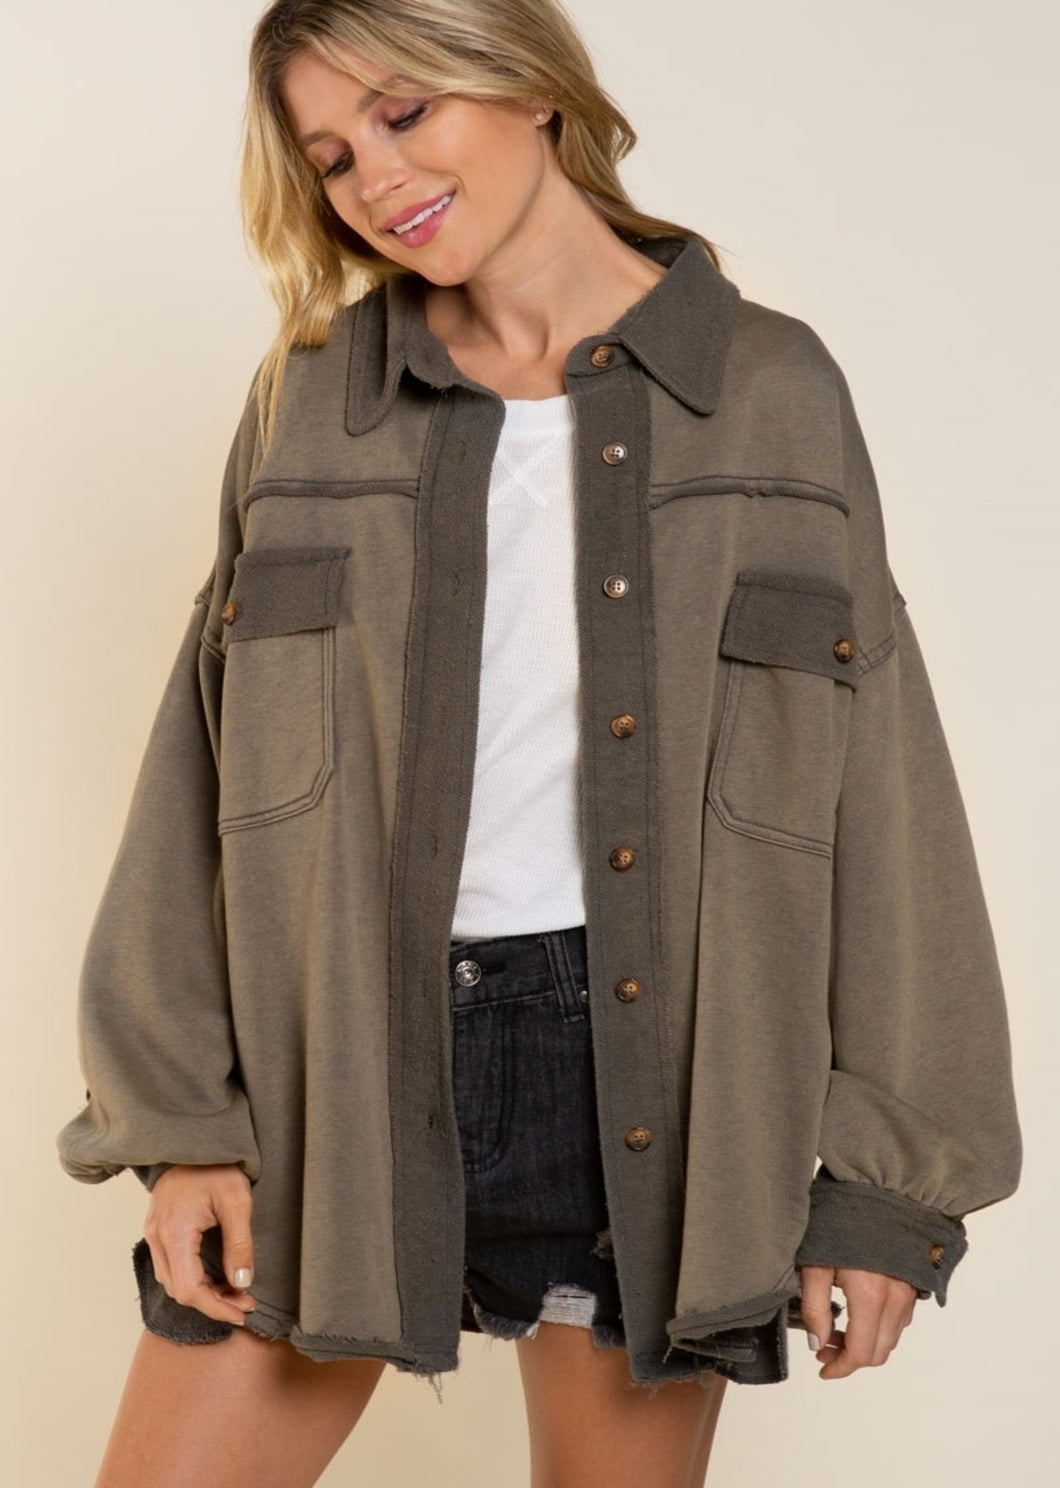 POL Oversized Jacket